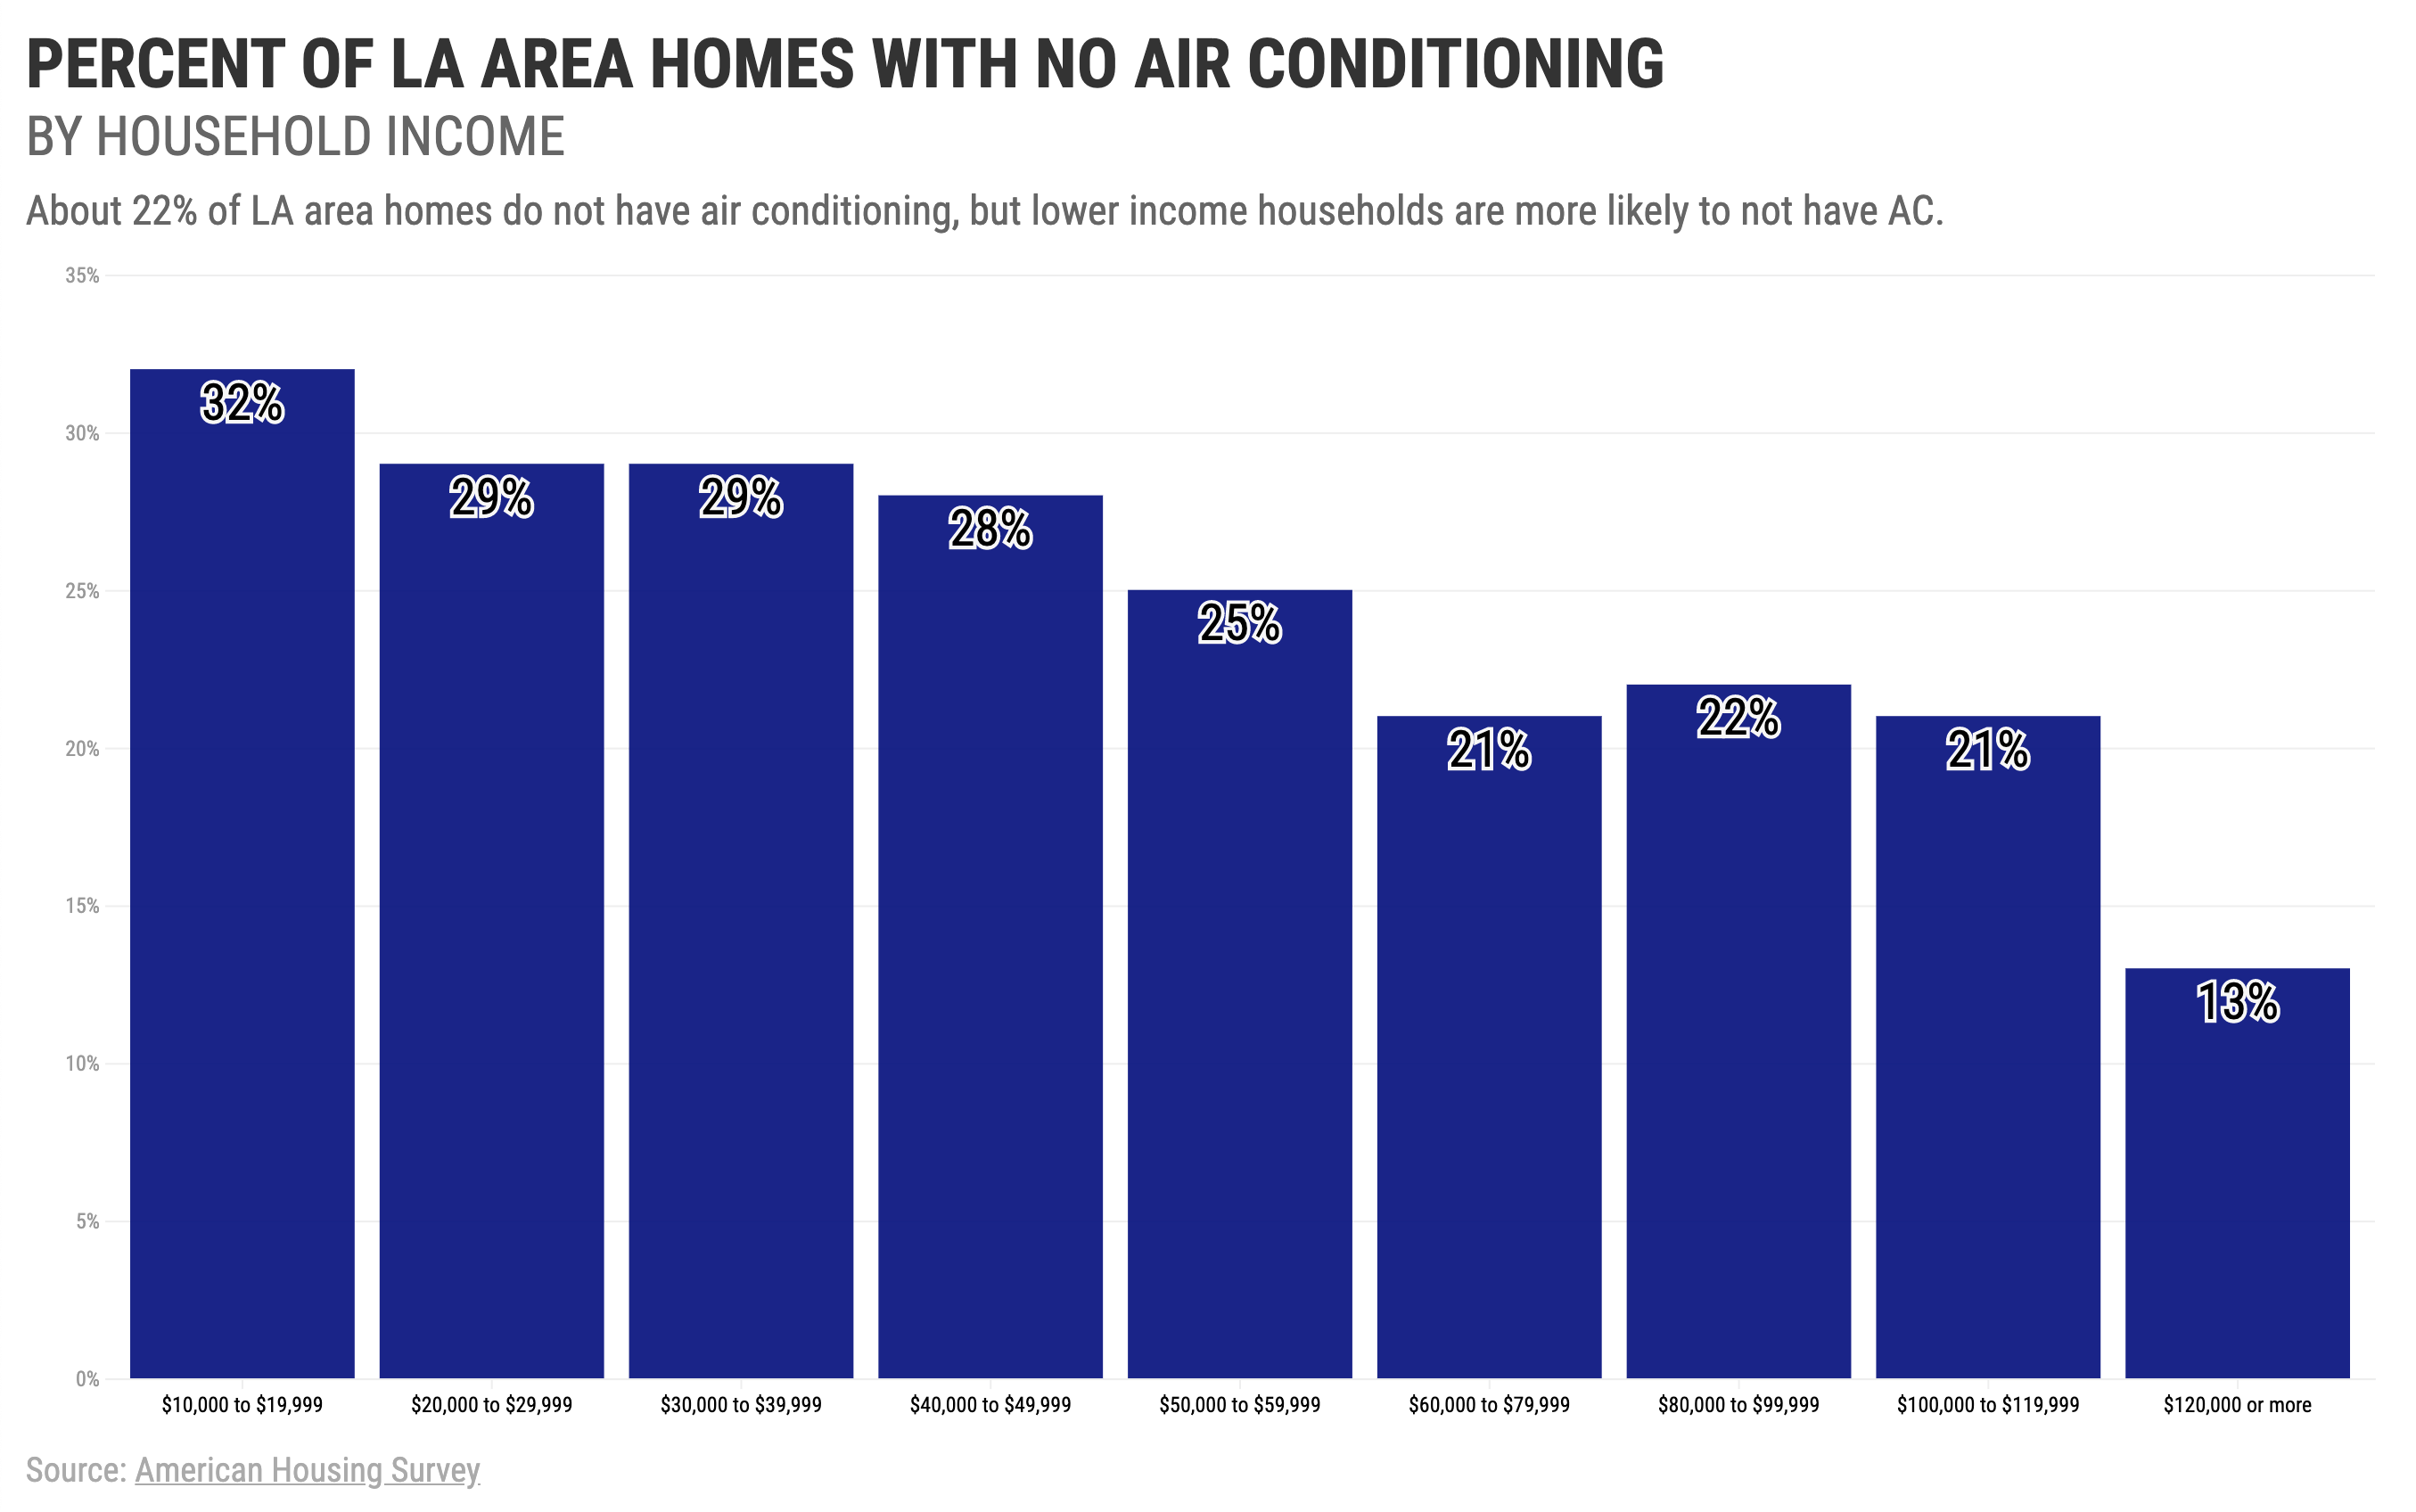 About 22% of LA area homes do not have air conditioning, but lower income households are more likely to not have AC